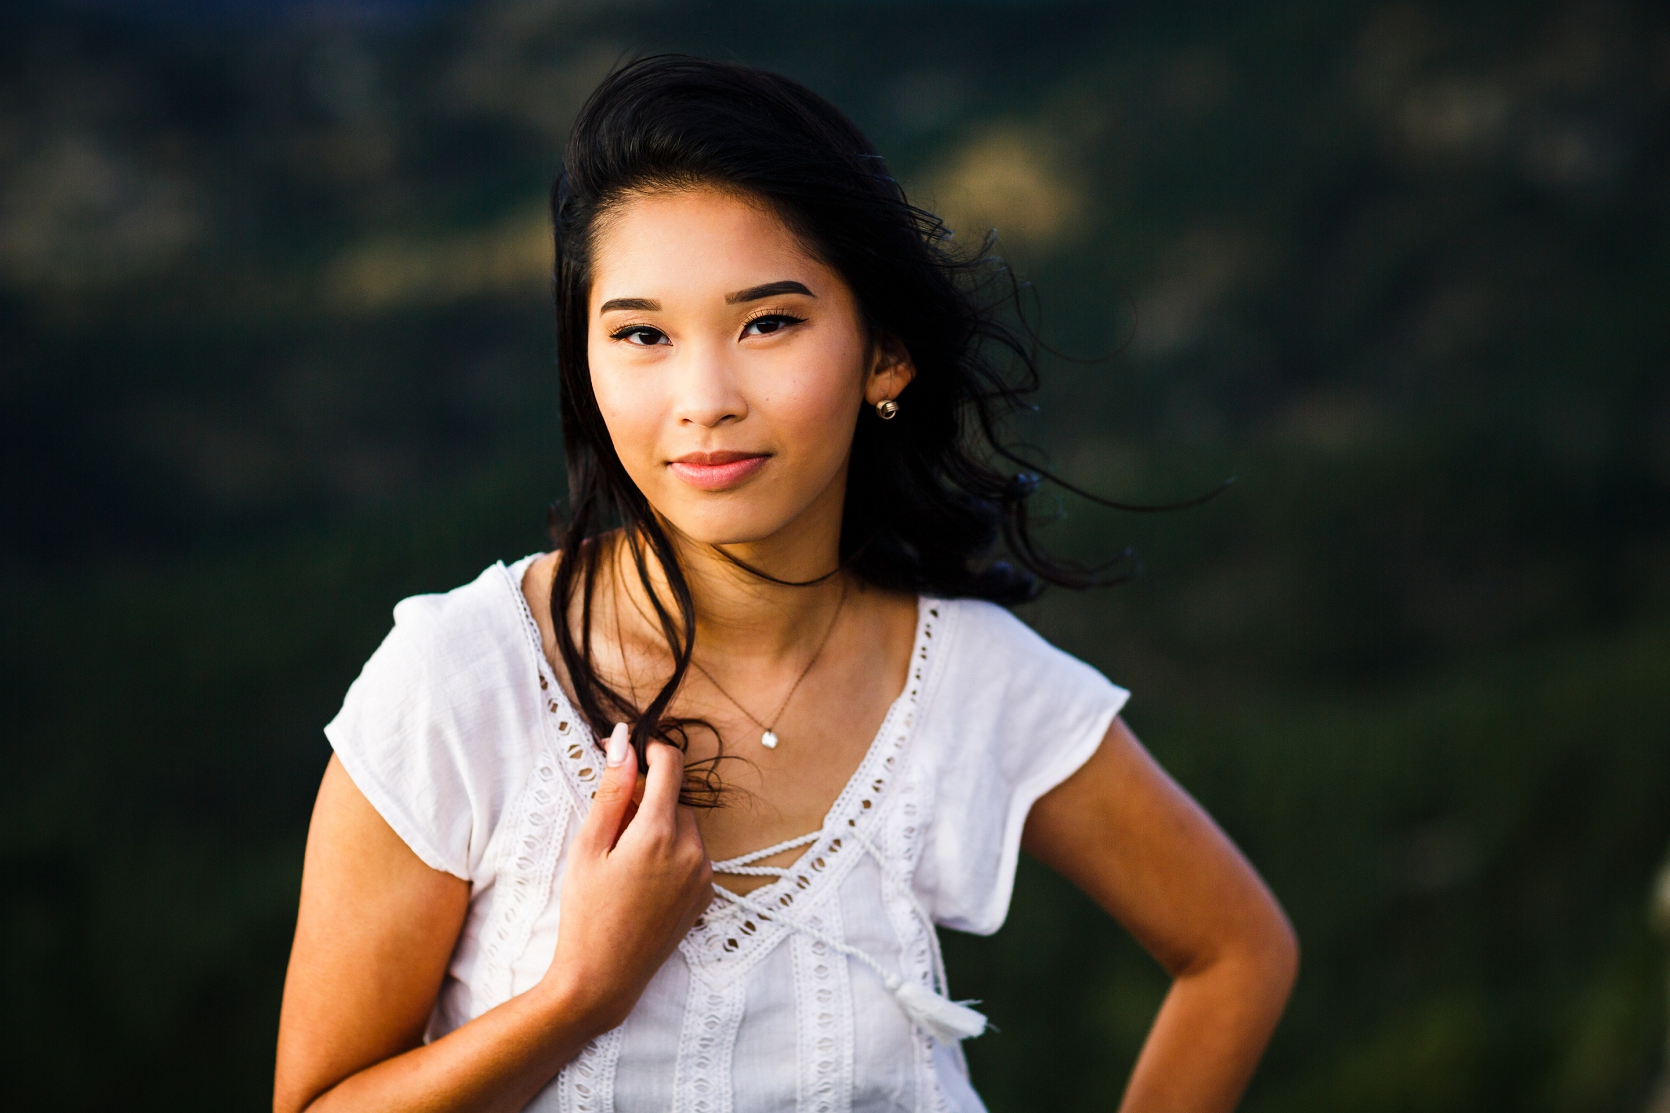 Boulder_Senior_Portrait_Session_0019